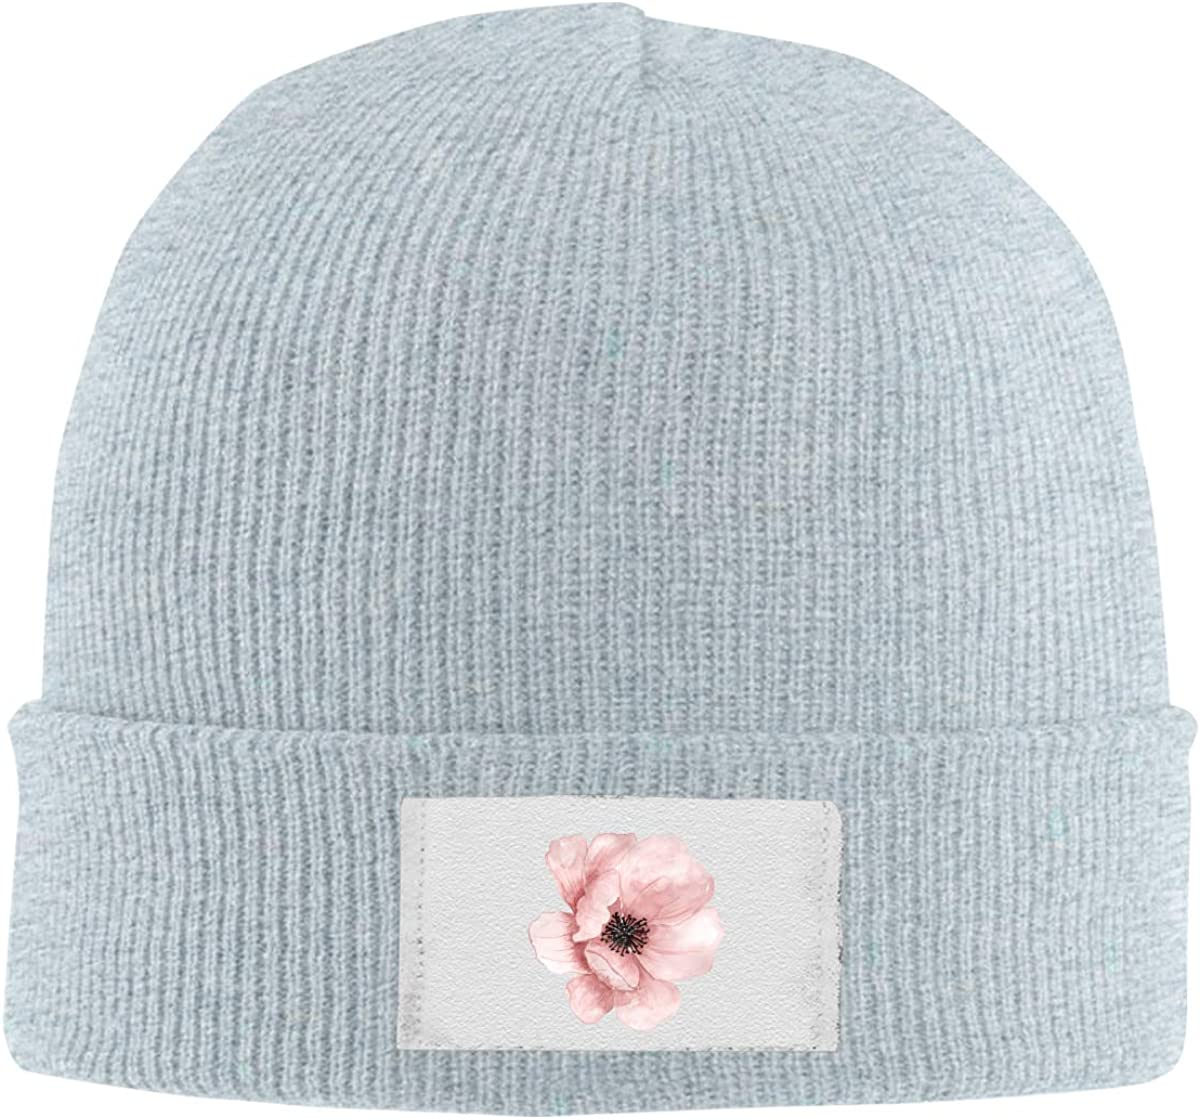 Skull Caps Pink Rose Winter Warm Knit Hats Stretchy Cuff Beanie Hat Black